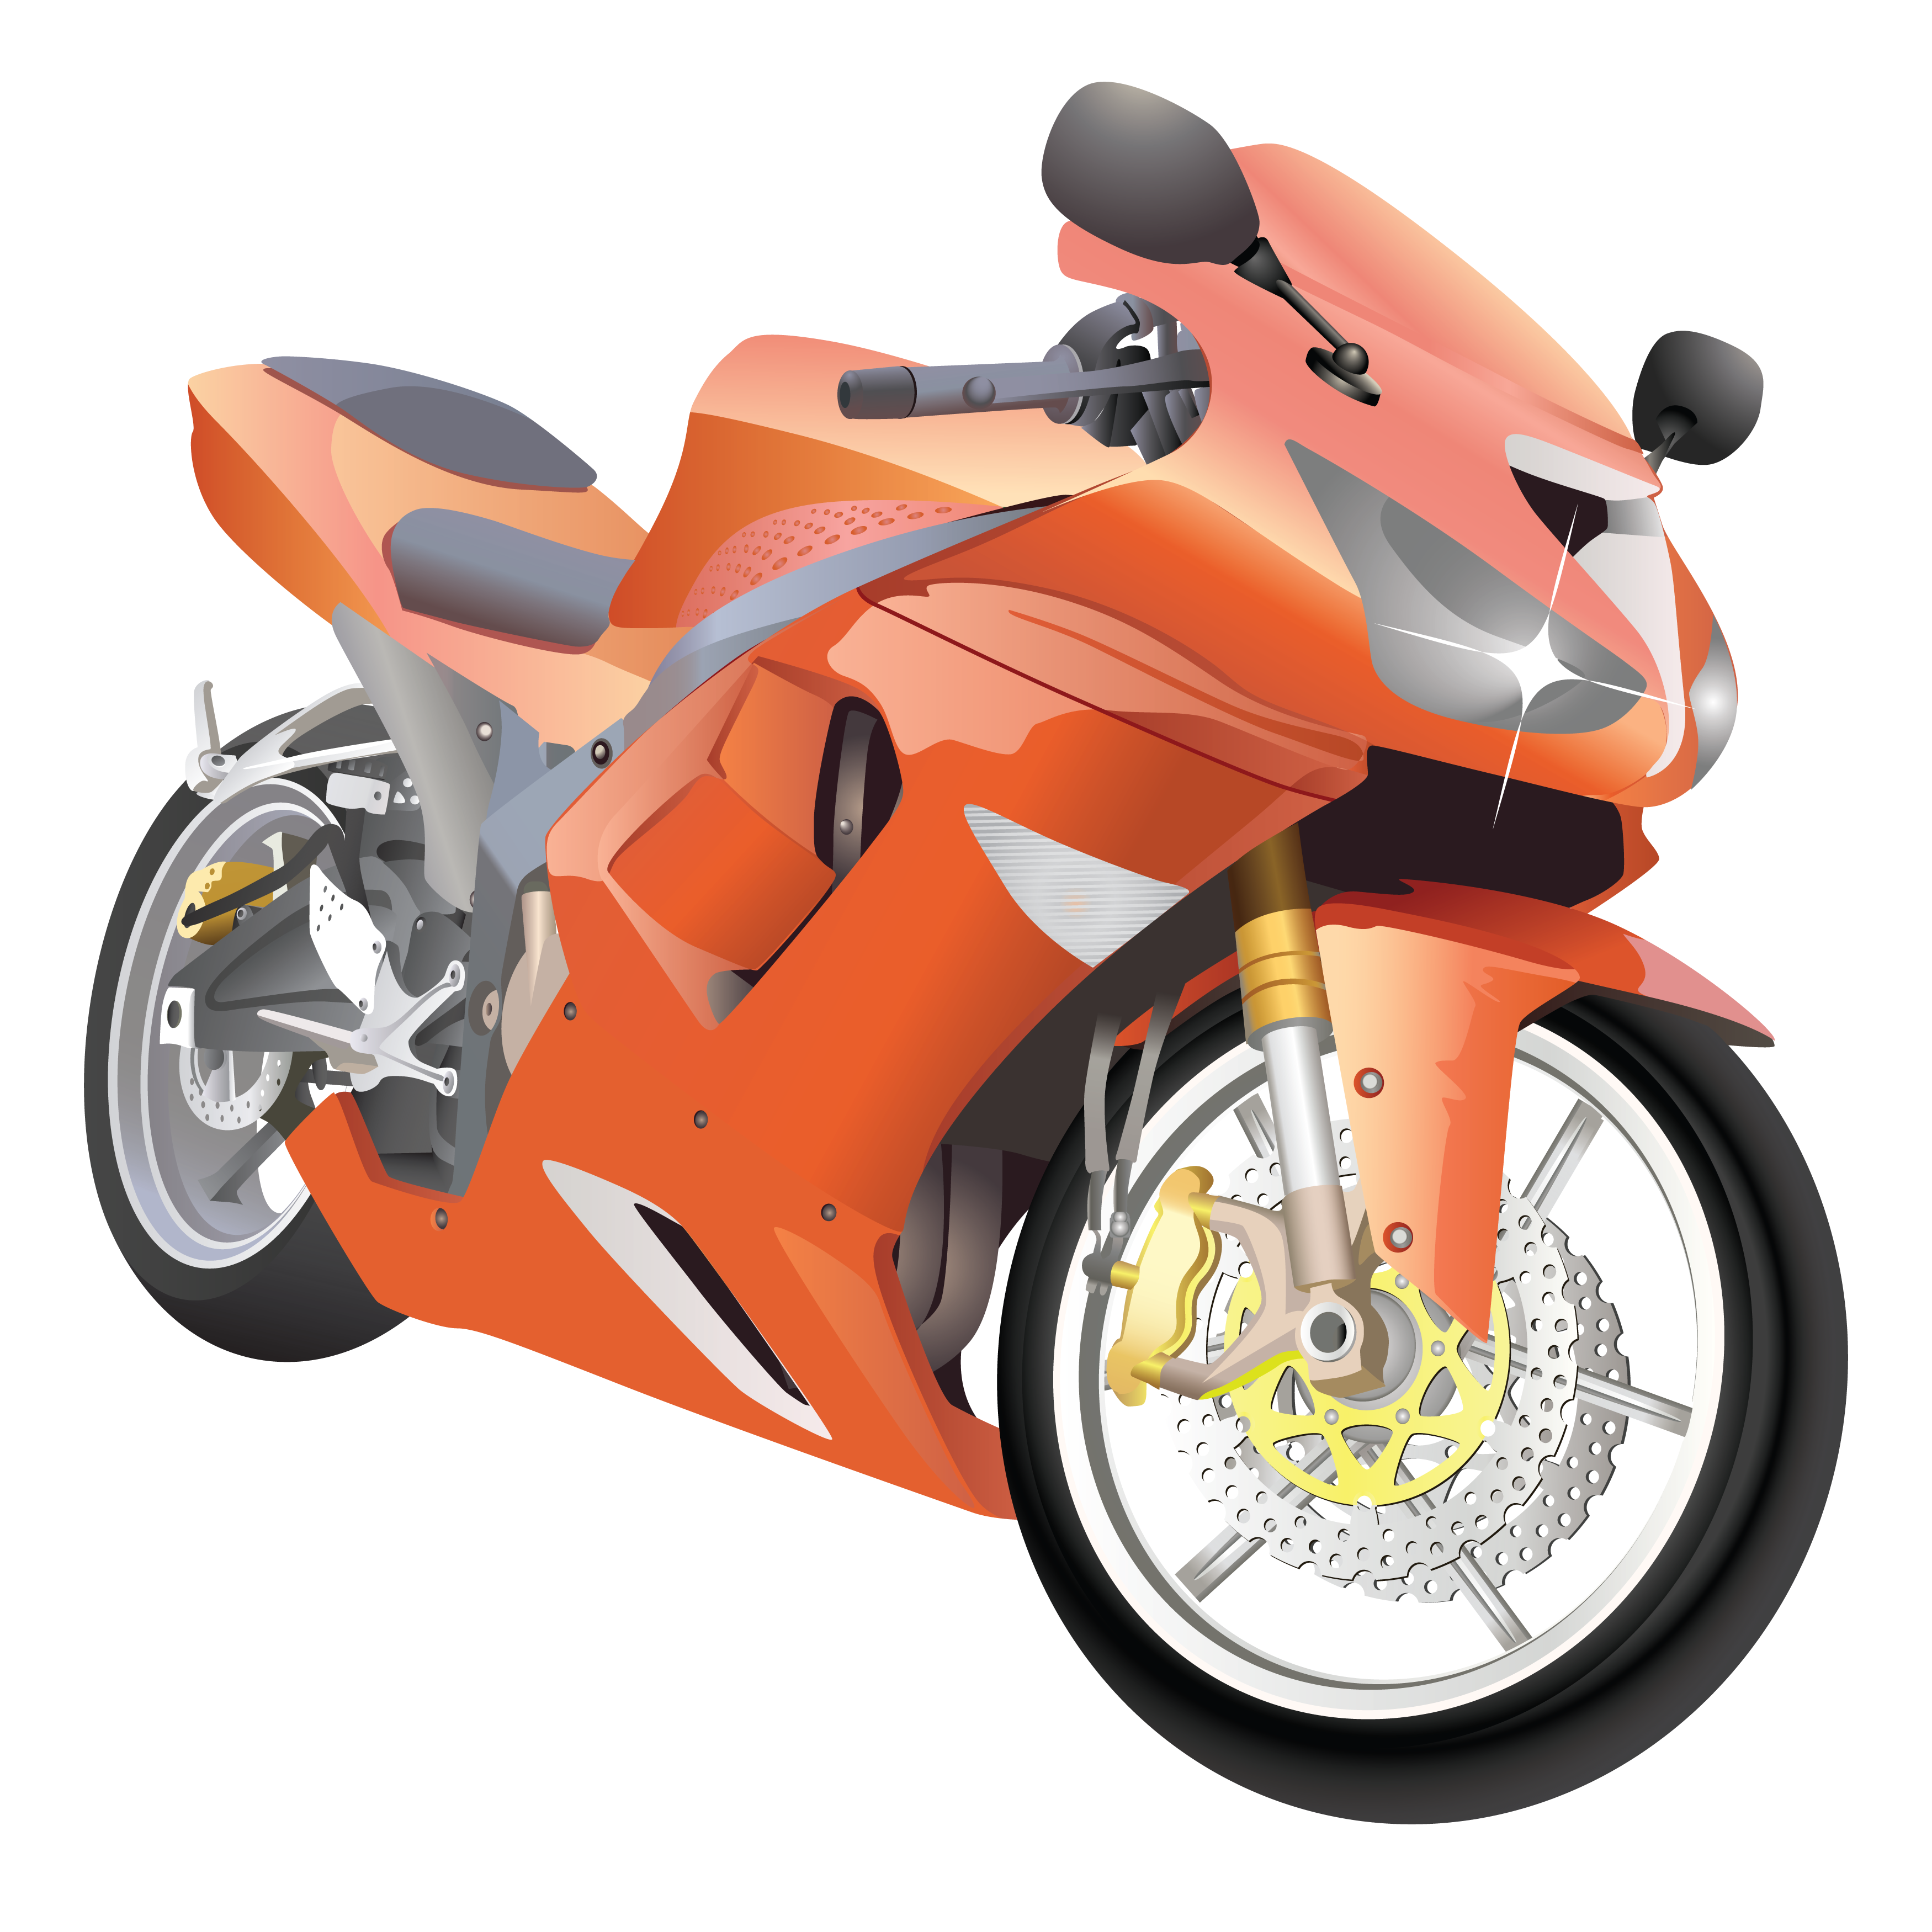 Index of skin frontend. Motorcycle clipart toy motorcycle